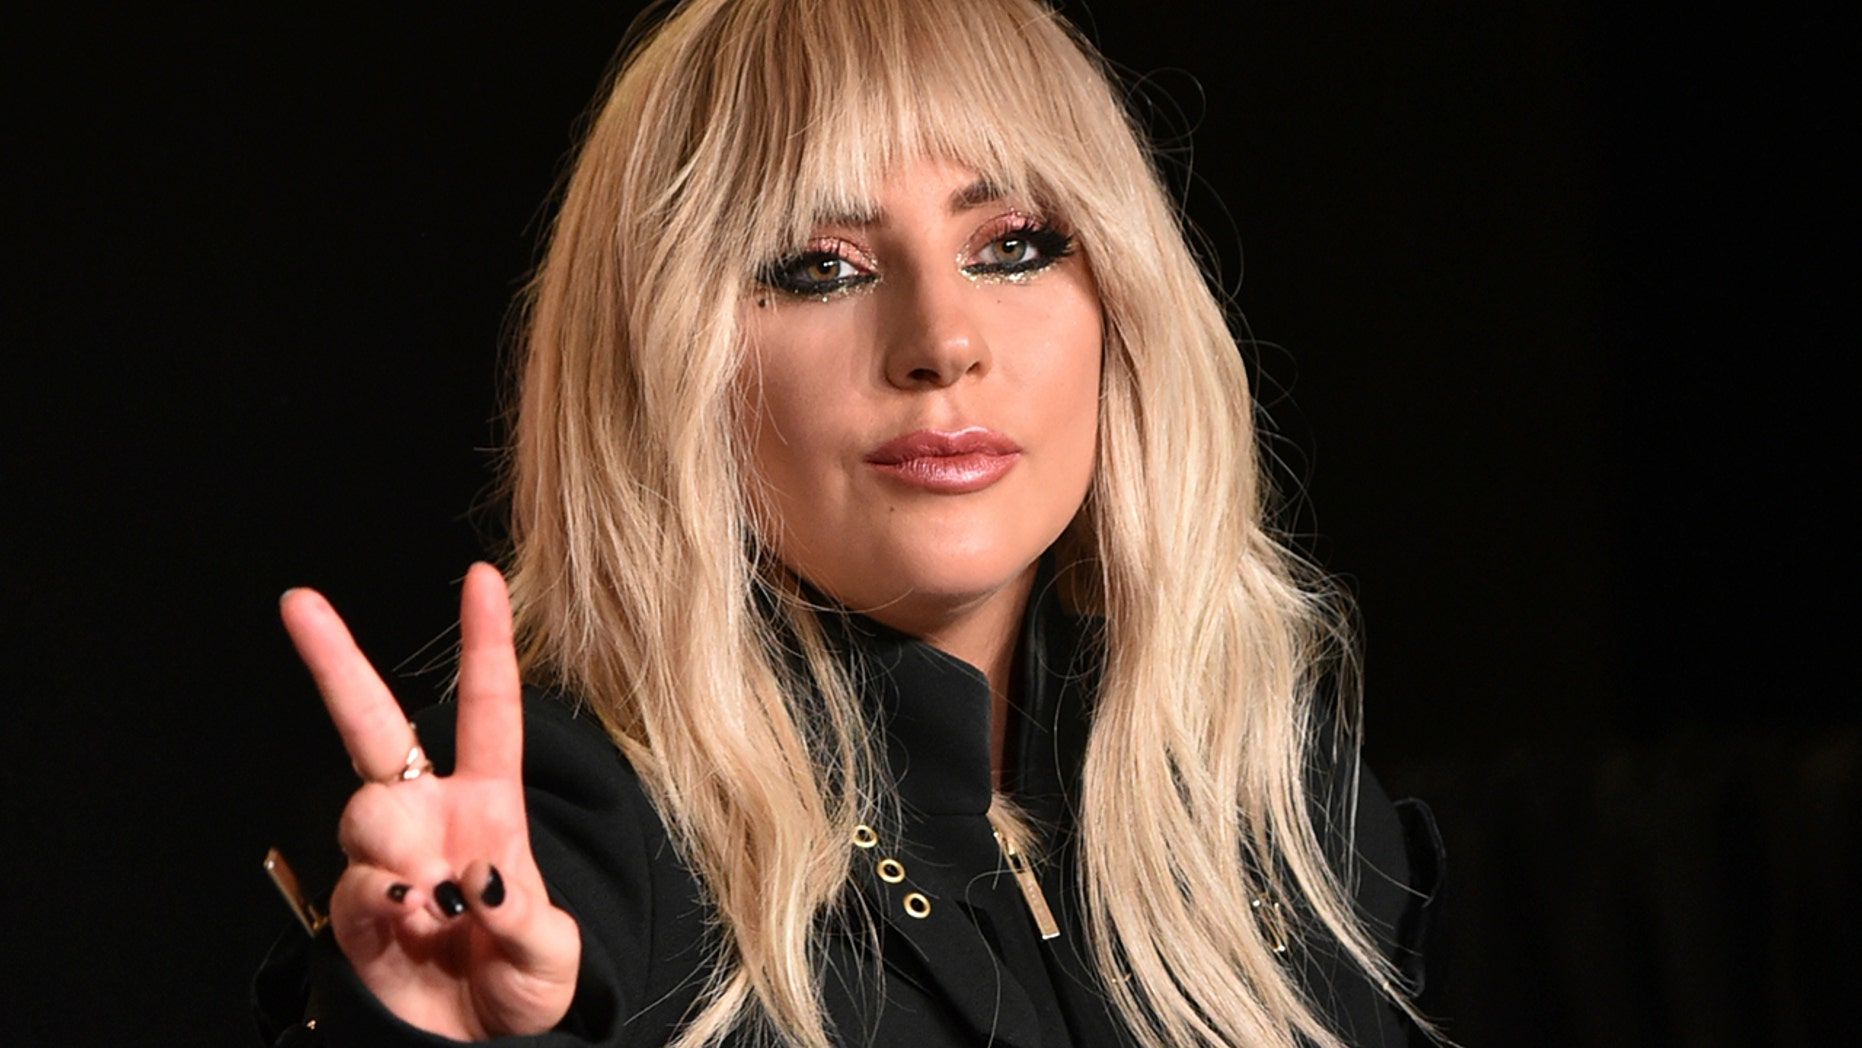 """Lady Gaga attends a press conference for """"Gaga: Five Foot Two"""" on day 2 of the Toronto International Film Festival at the TIFF Bell Lightbox on Friday, Sept. 8, 2017, in Toronto."""